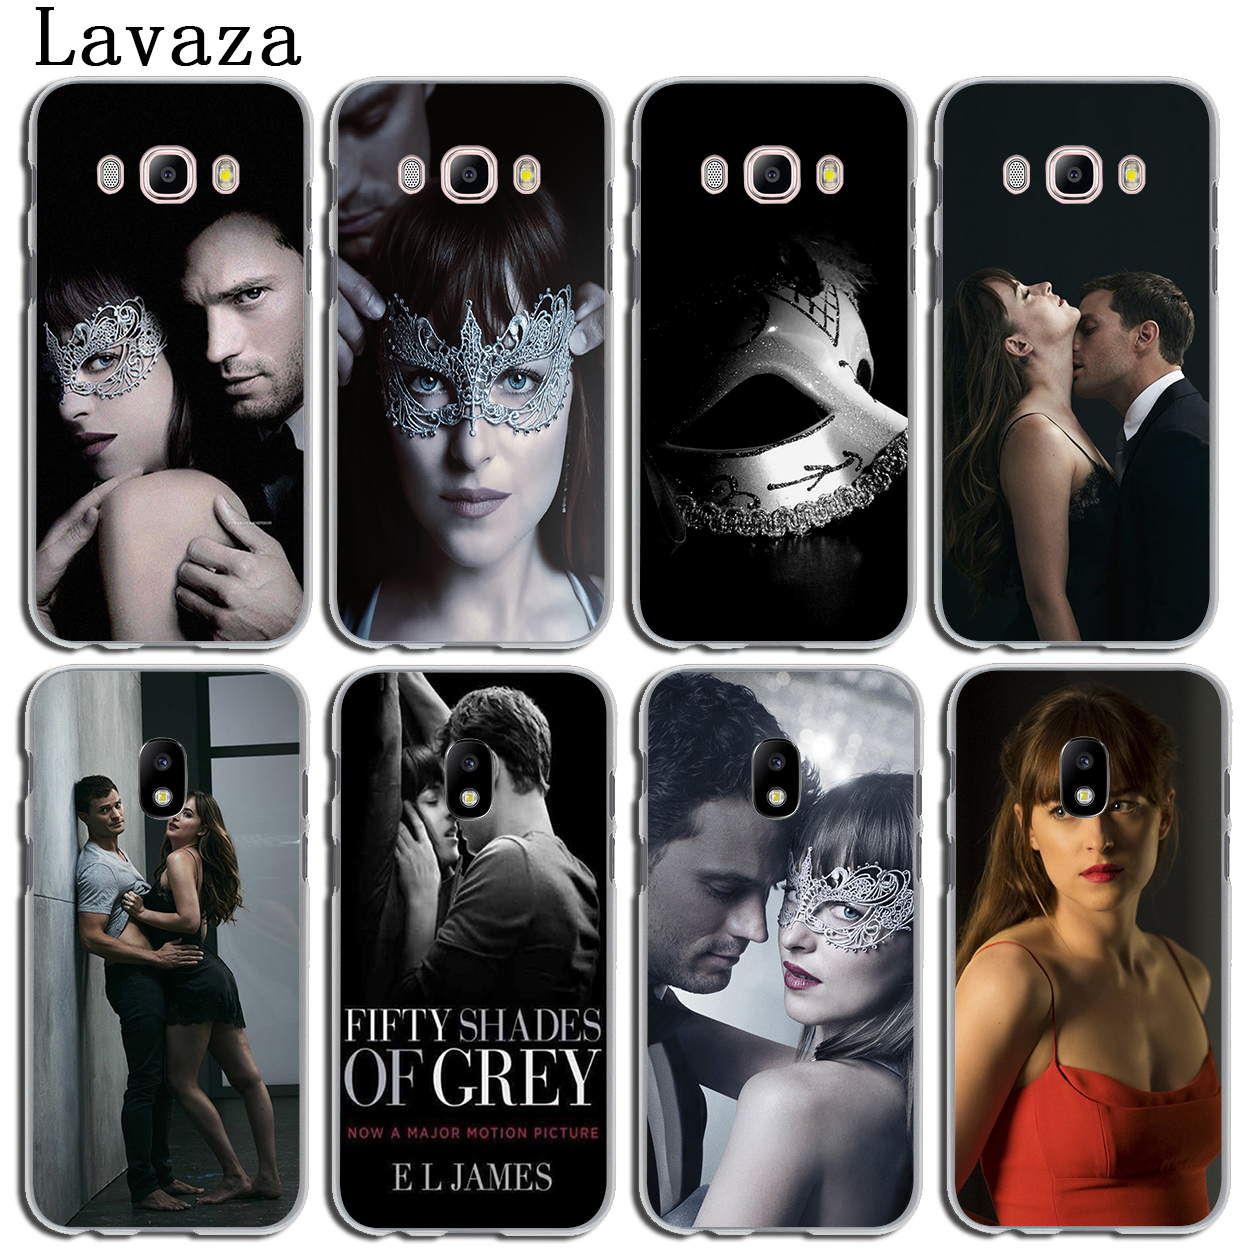 Lavaza Fifty Shades Darker of grey freed Phone Case for Samsung Galaxy J3 J1 J2 J7 J5 2015 2016 2017 J2 Pro Ace J5 J7 Prime Case ...